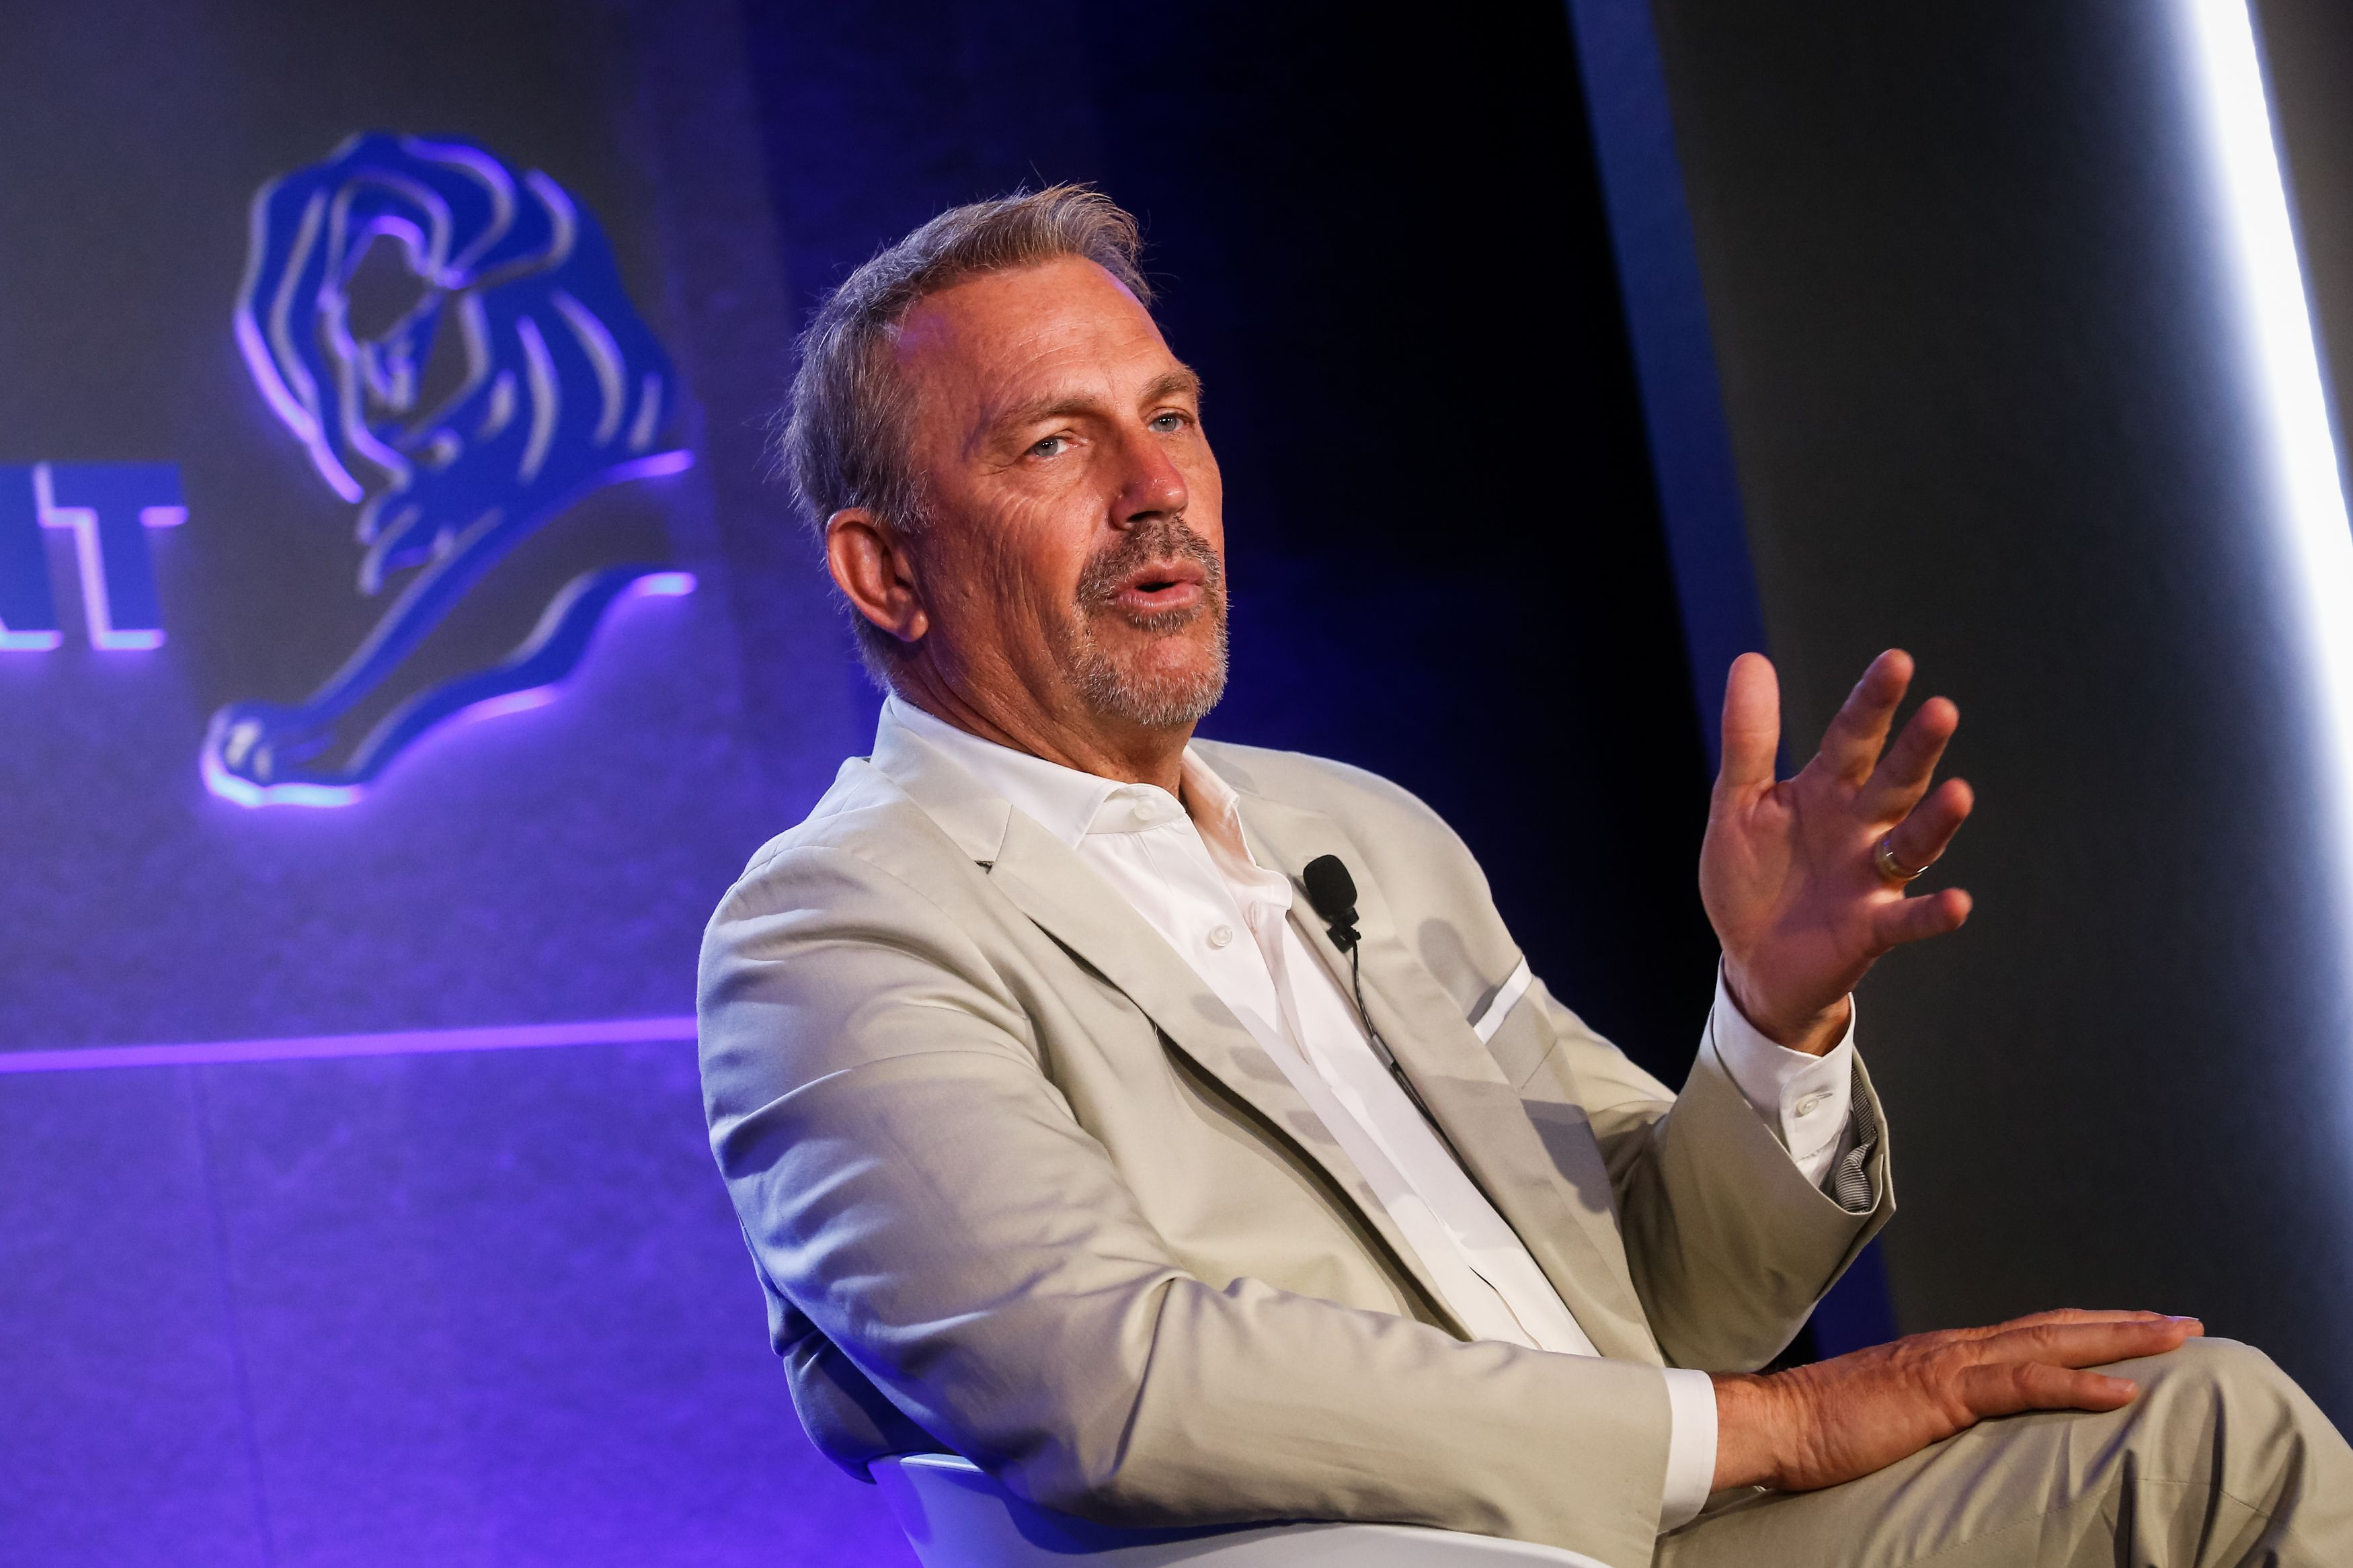 Kevin Costner speaks during the Cannes Lions Festival 2018 on June 21, 2018 | Photo: Getty Images